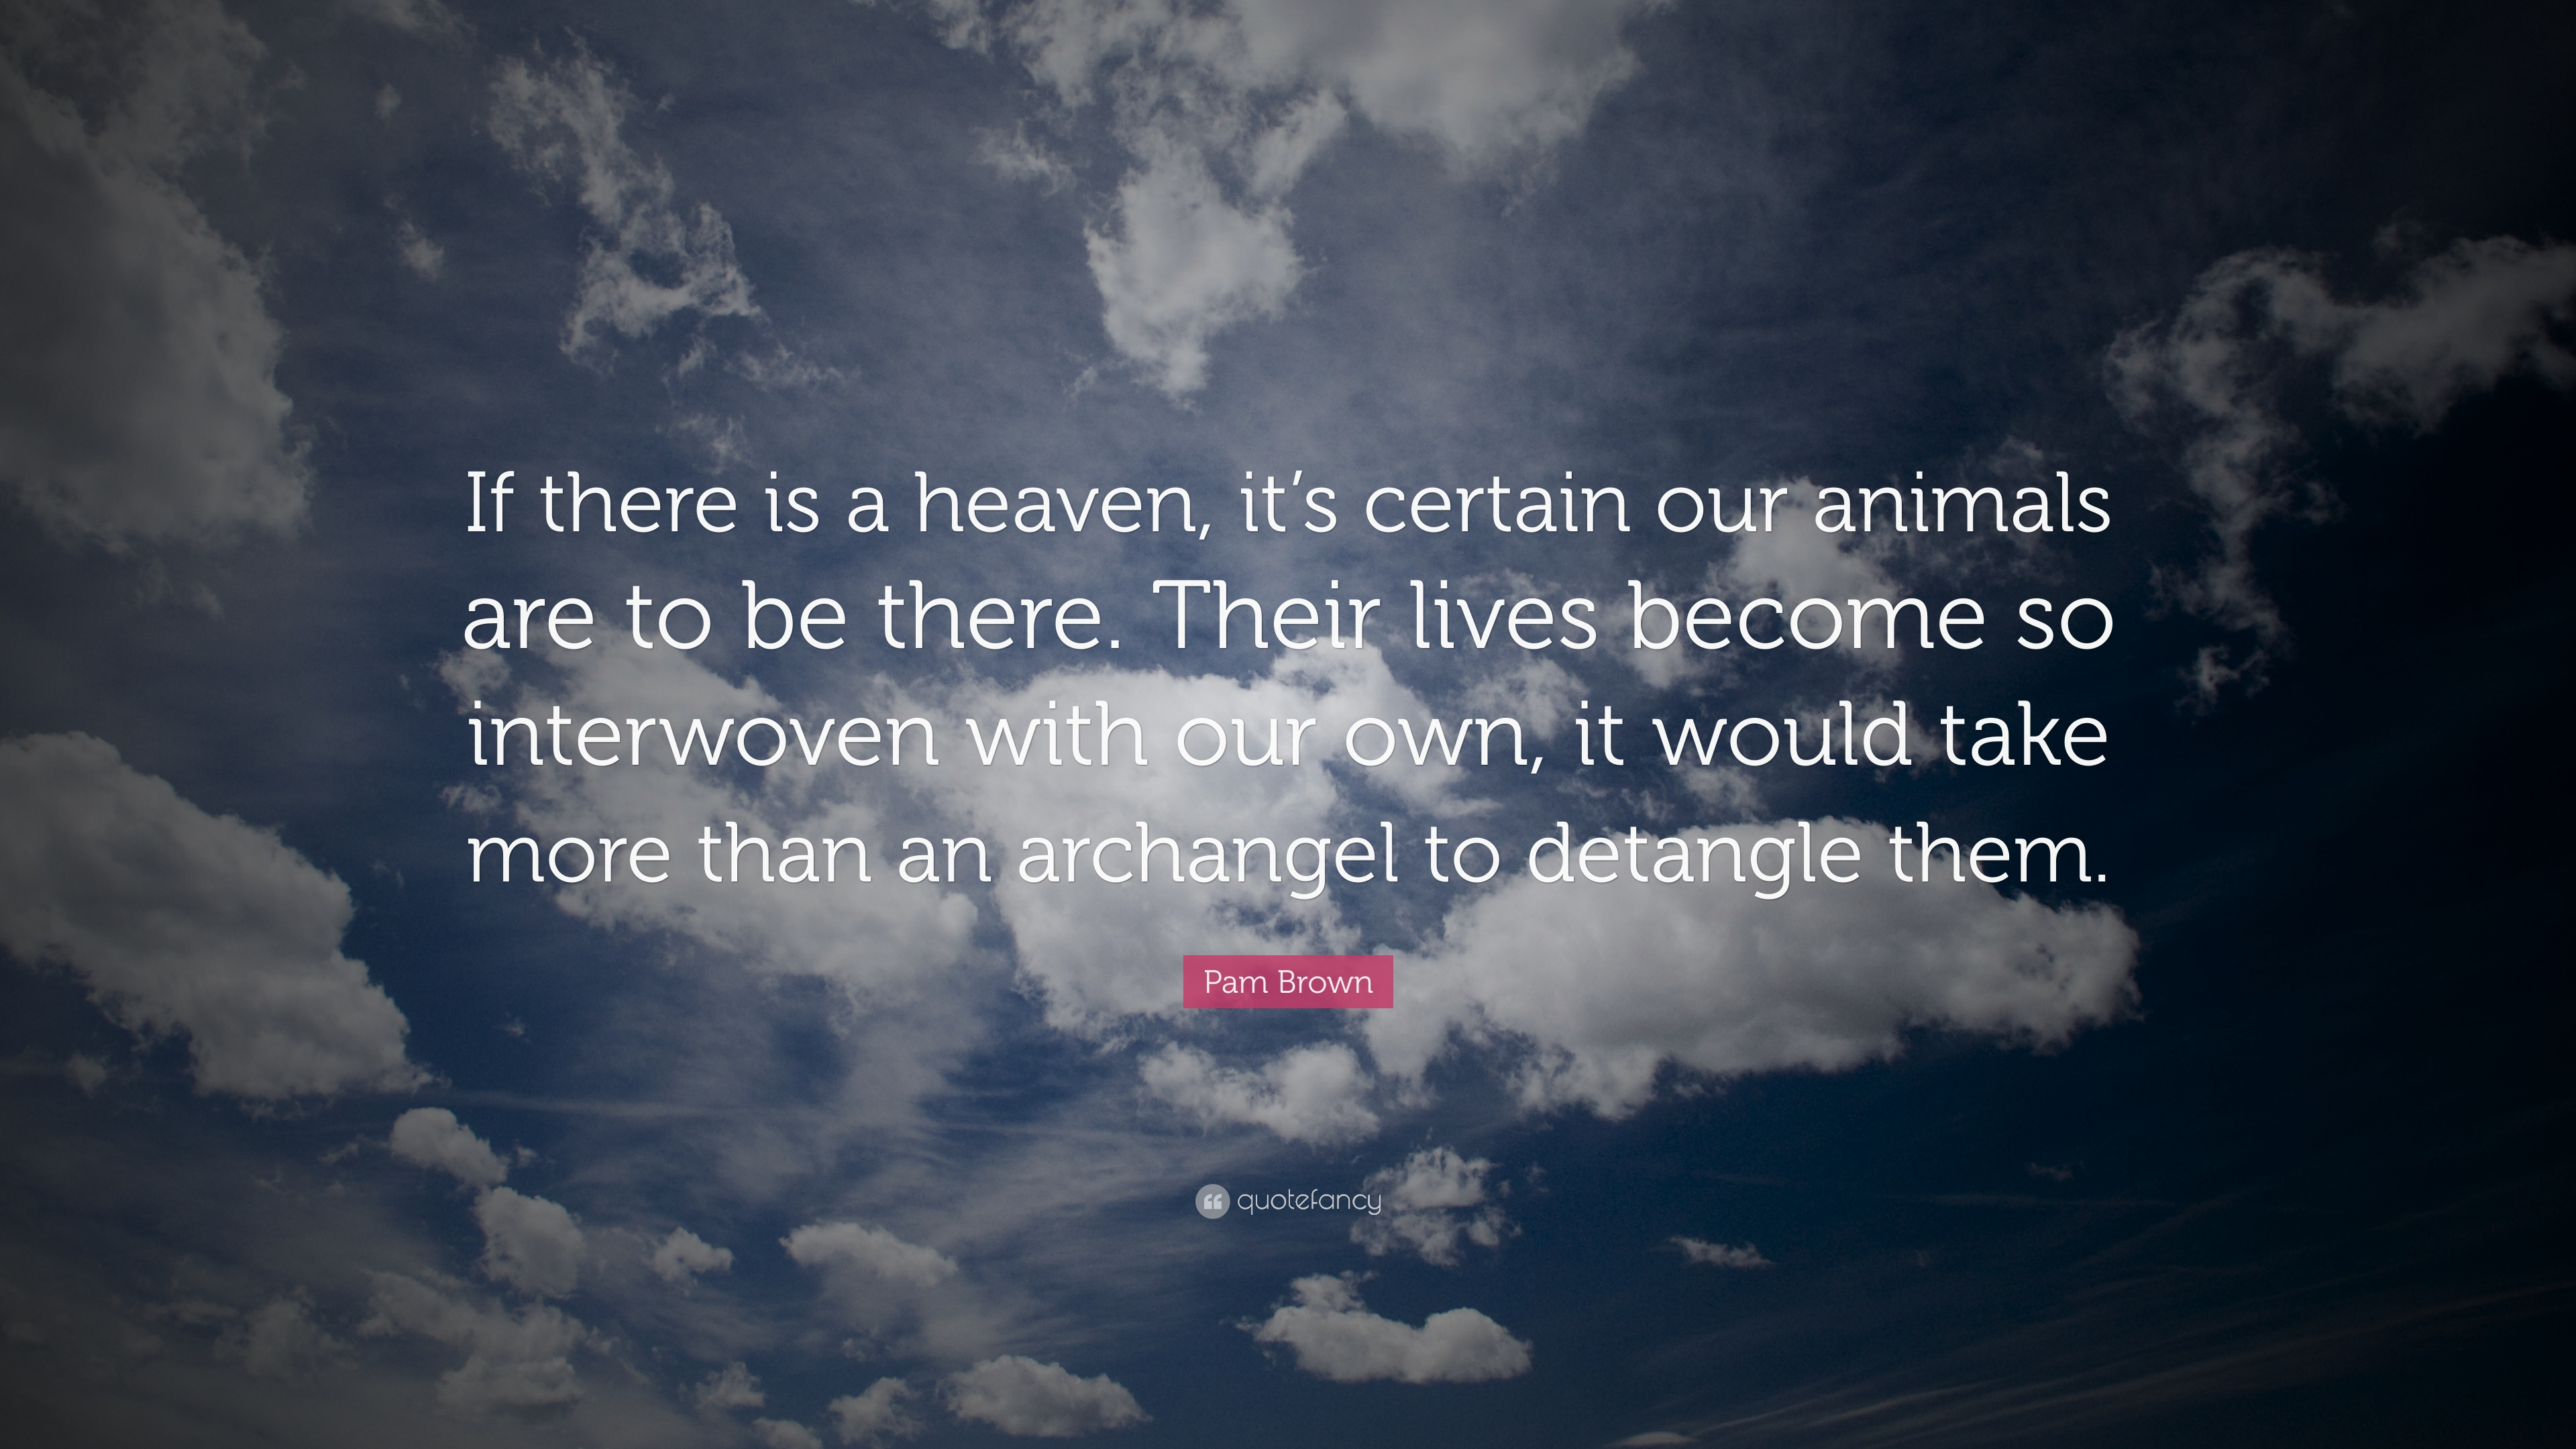 Pam Brown Quote If There Is A Heaven It S Certain Our Animals Are To Be There Their Lives